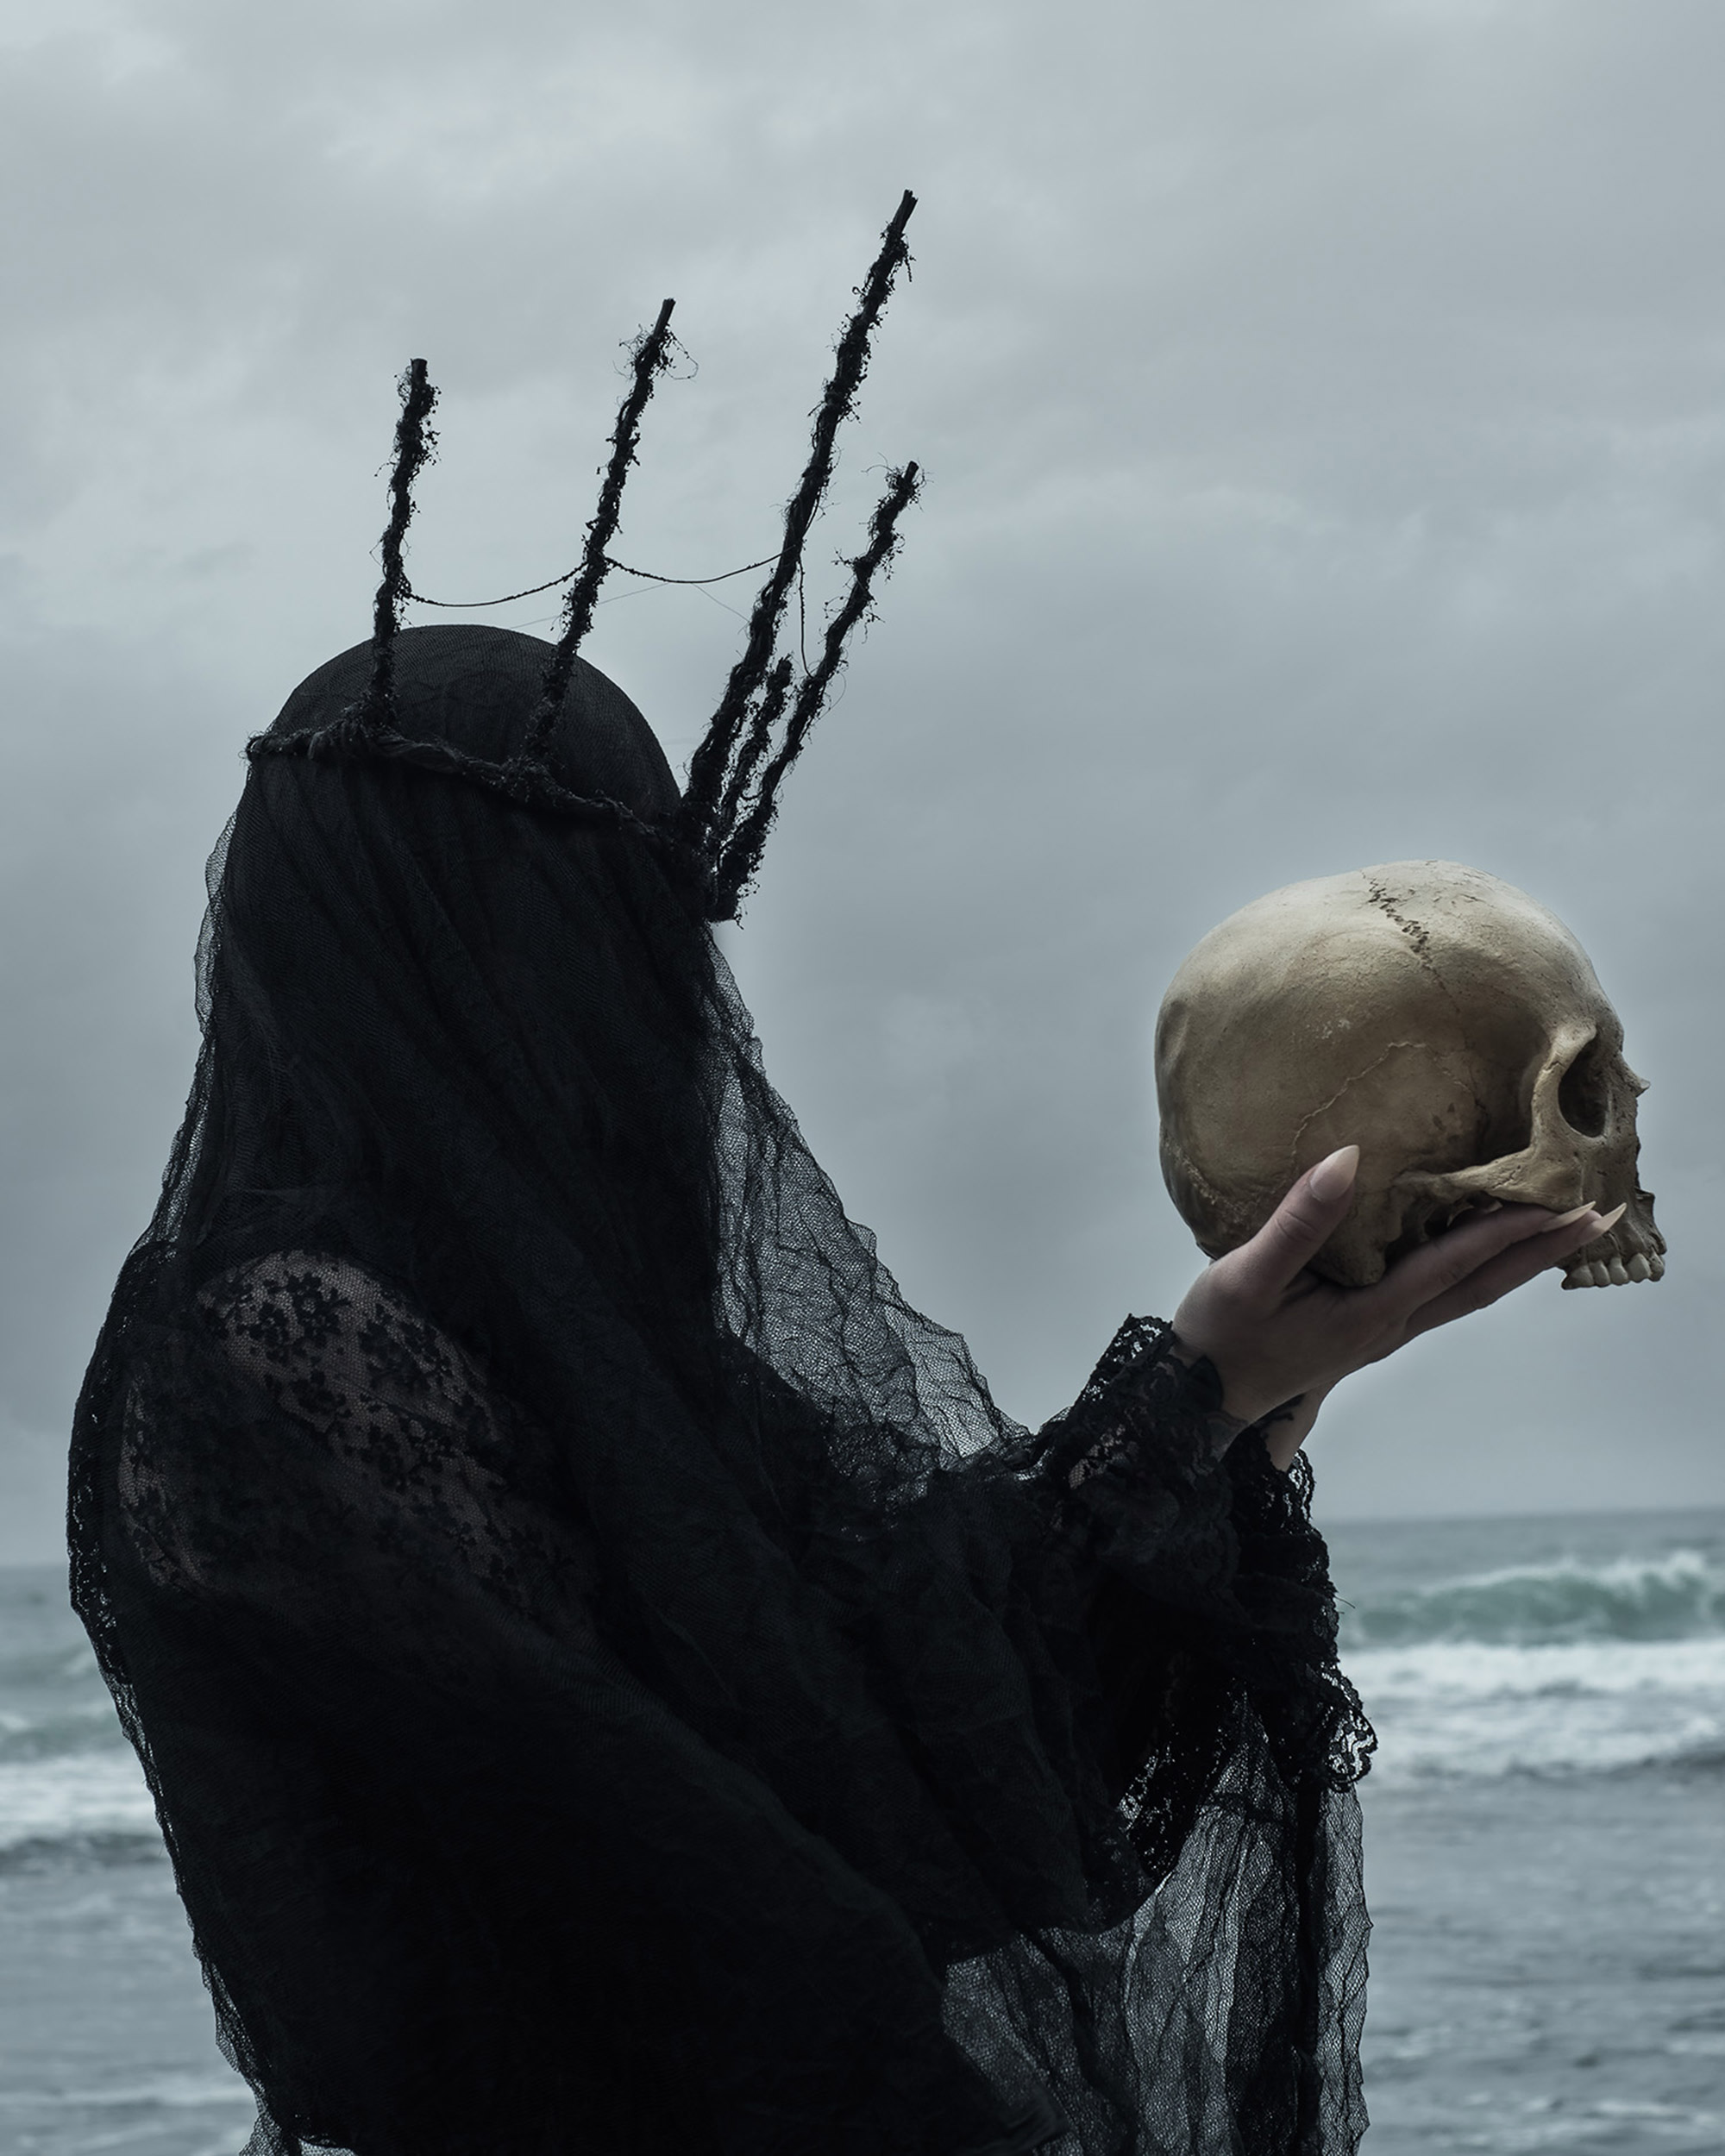 Siren: The Spectral and Grim Photography of American Ghoul